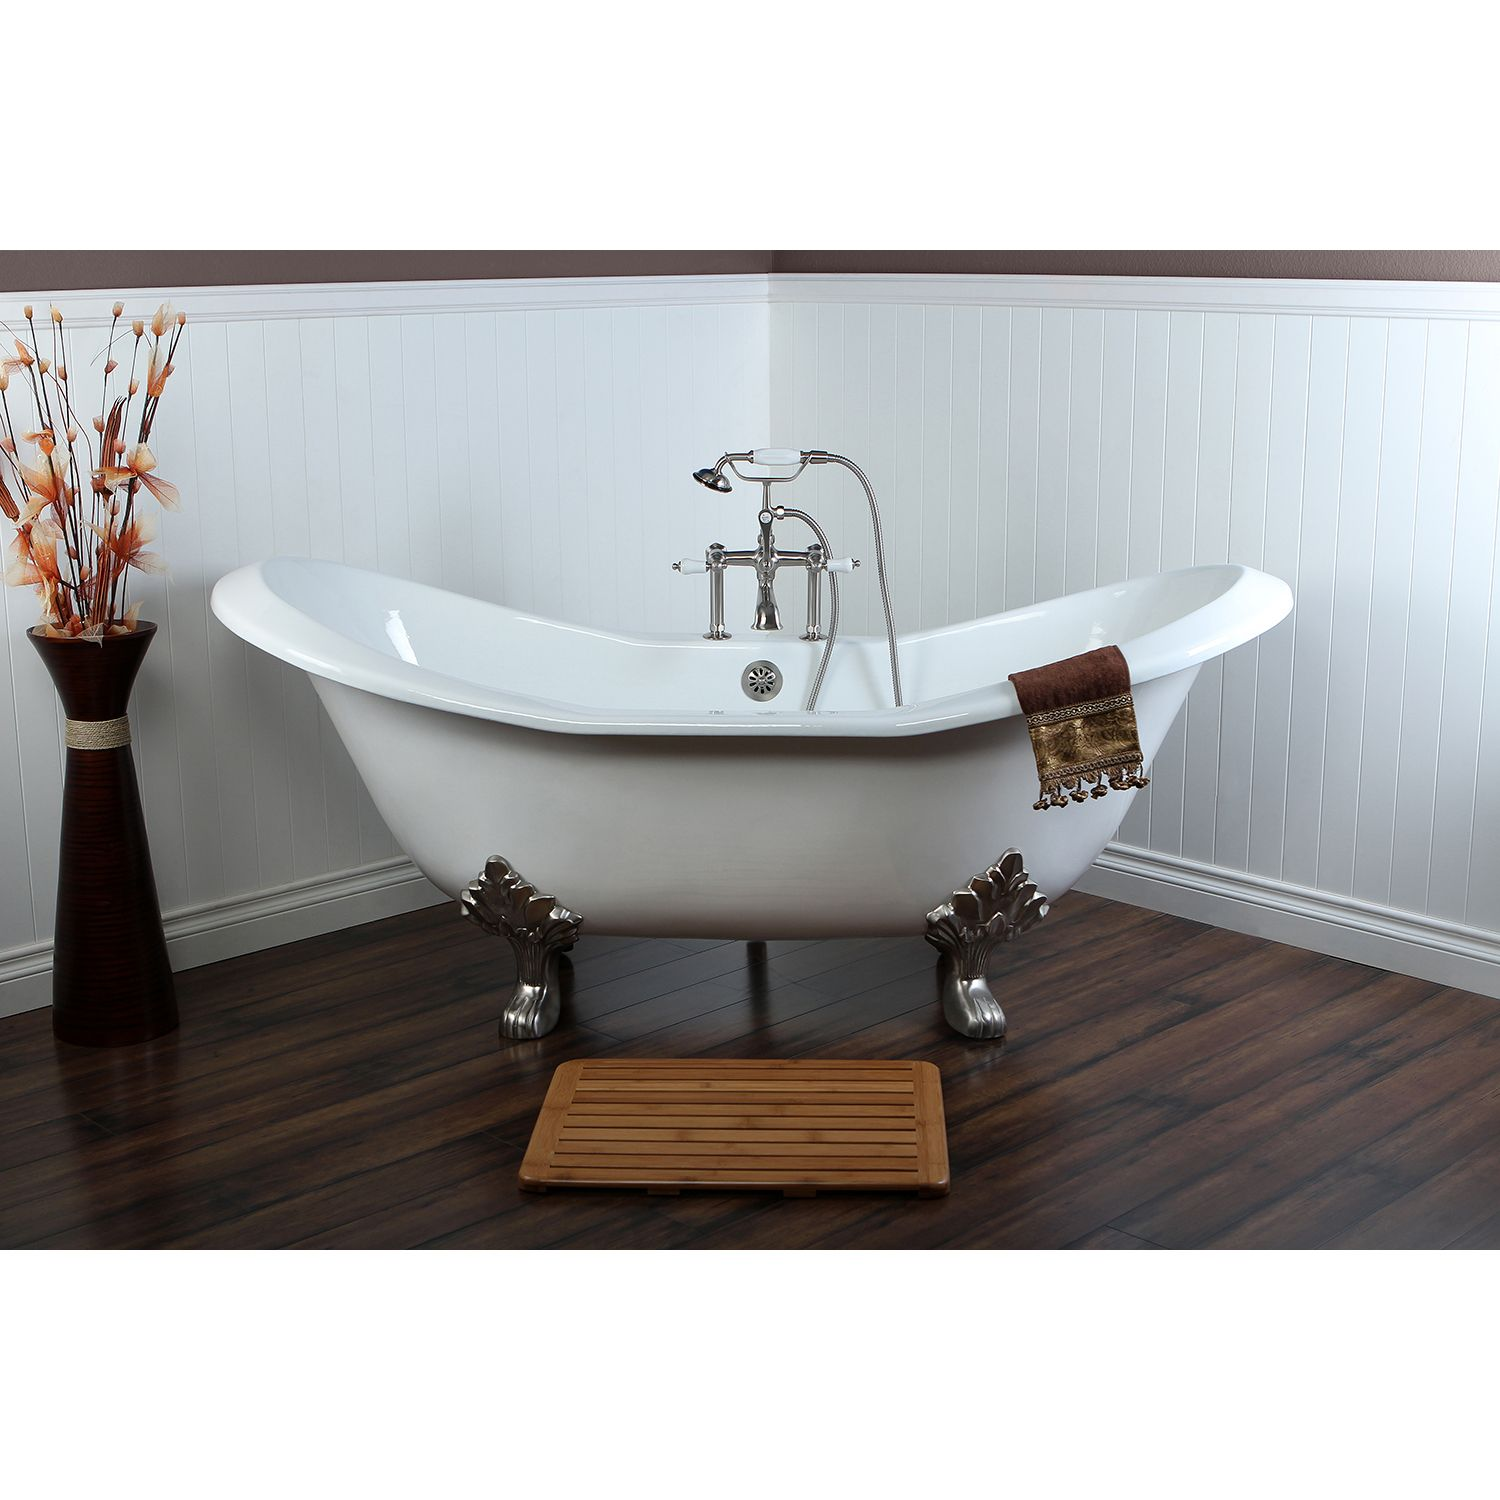 72-inch Large Claw Foot Tub with Satin Nickel Clawfoot Tub Faucet ...